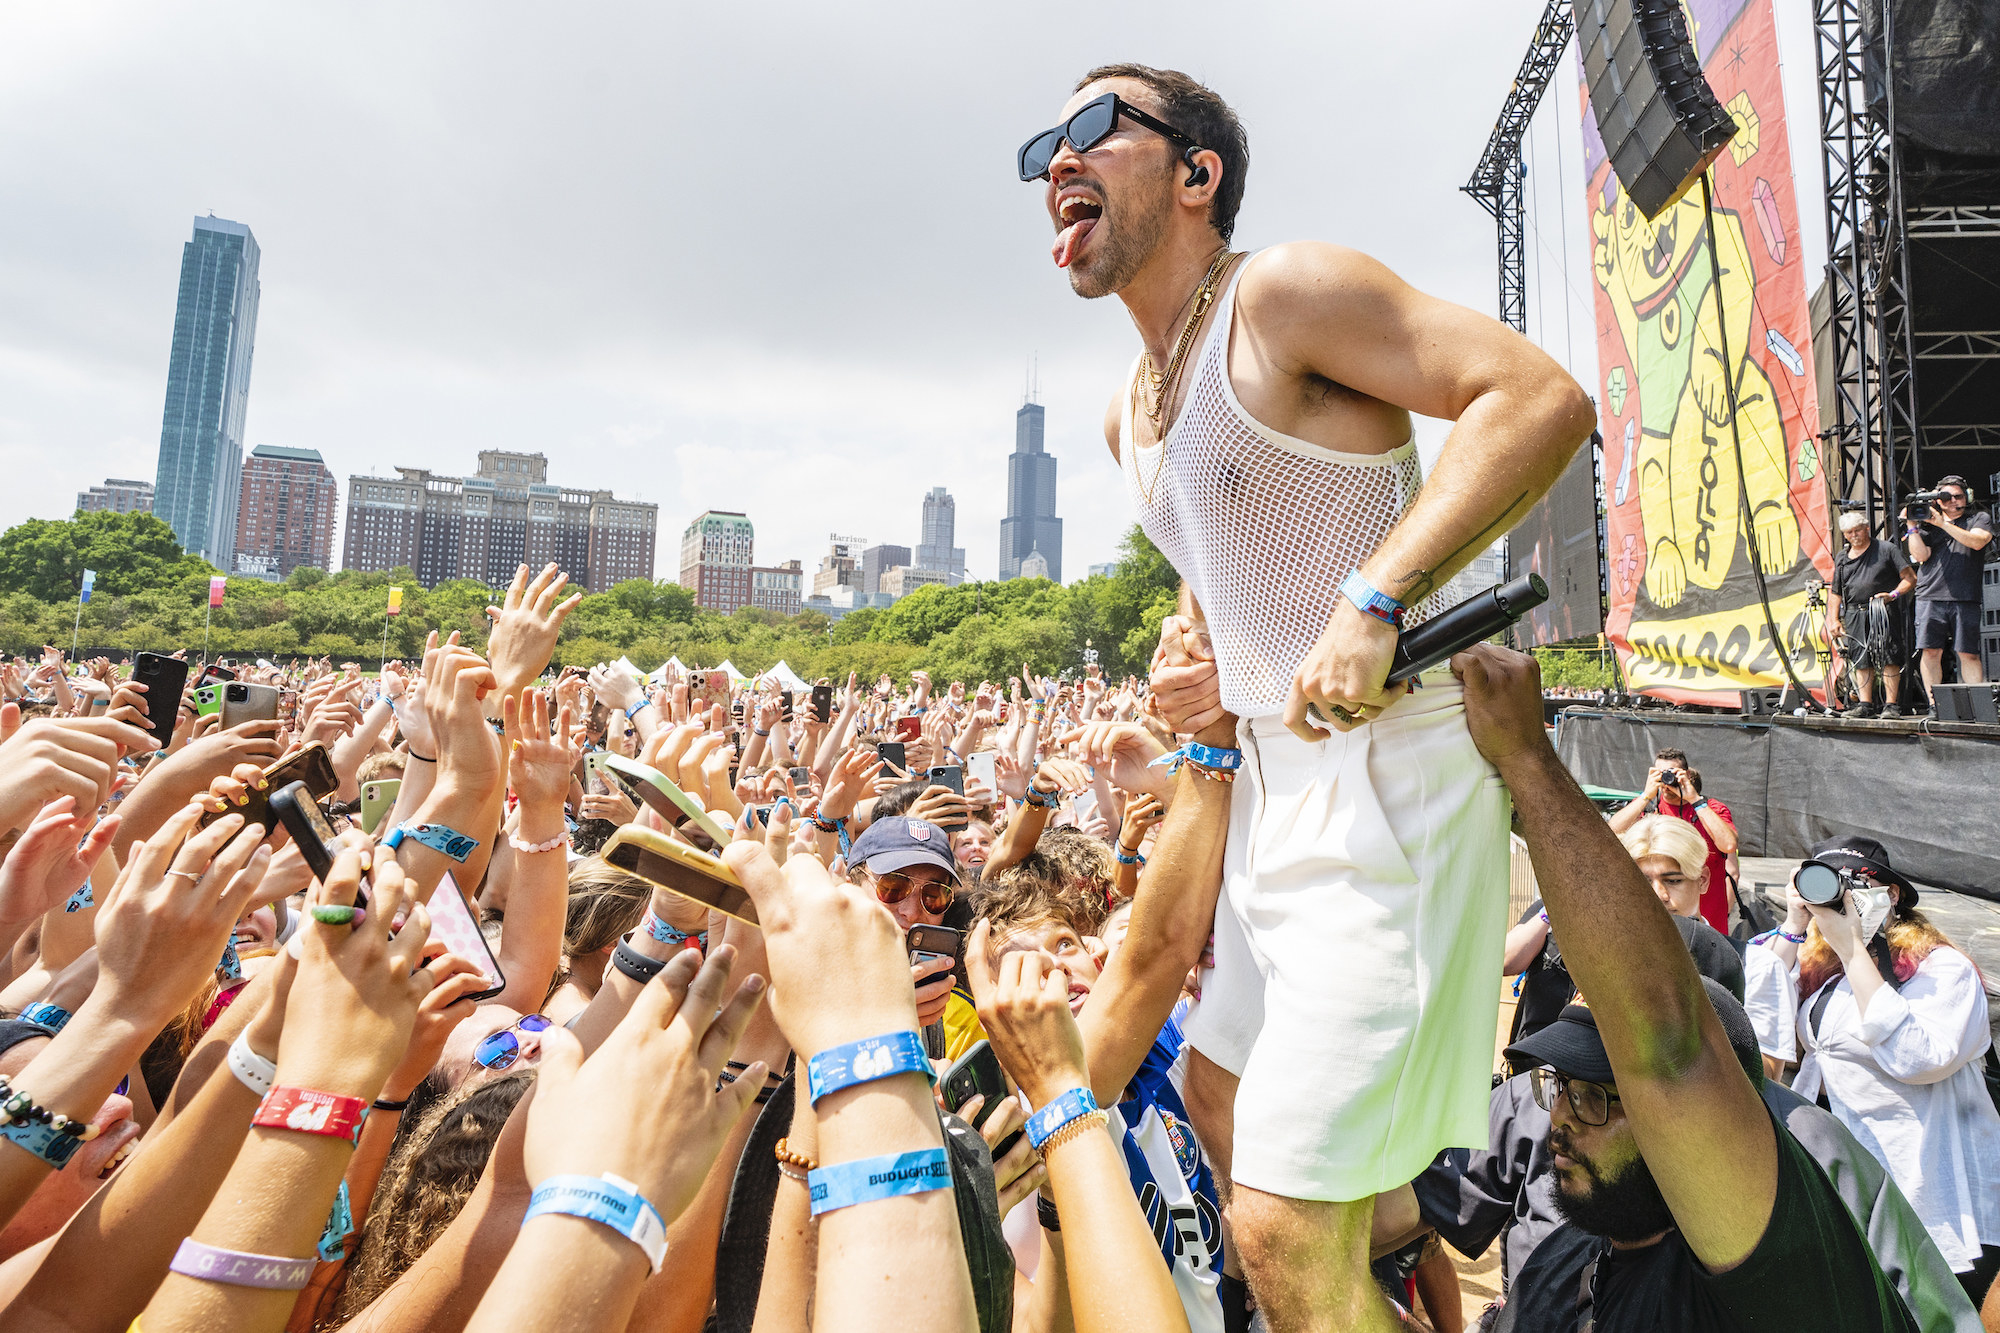 Musician Max Schneider stands above a crowd of young people as he performs at Lollapalooza music festival in Chicago.